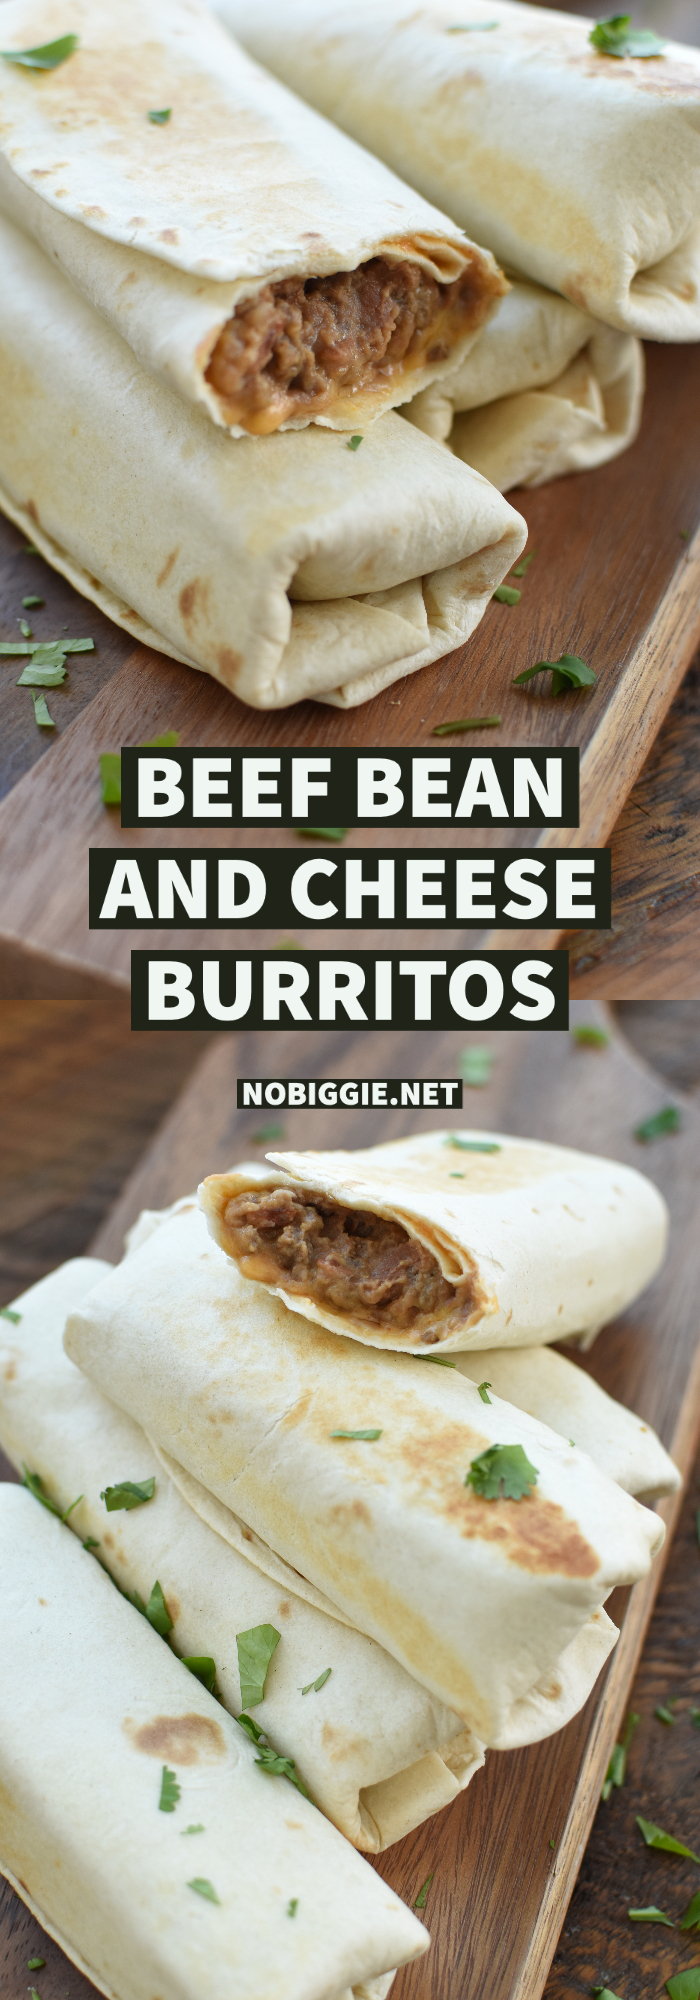 Beef Bean and Cheese Burritos